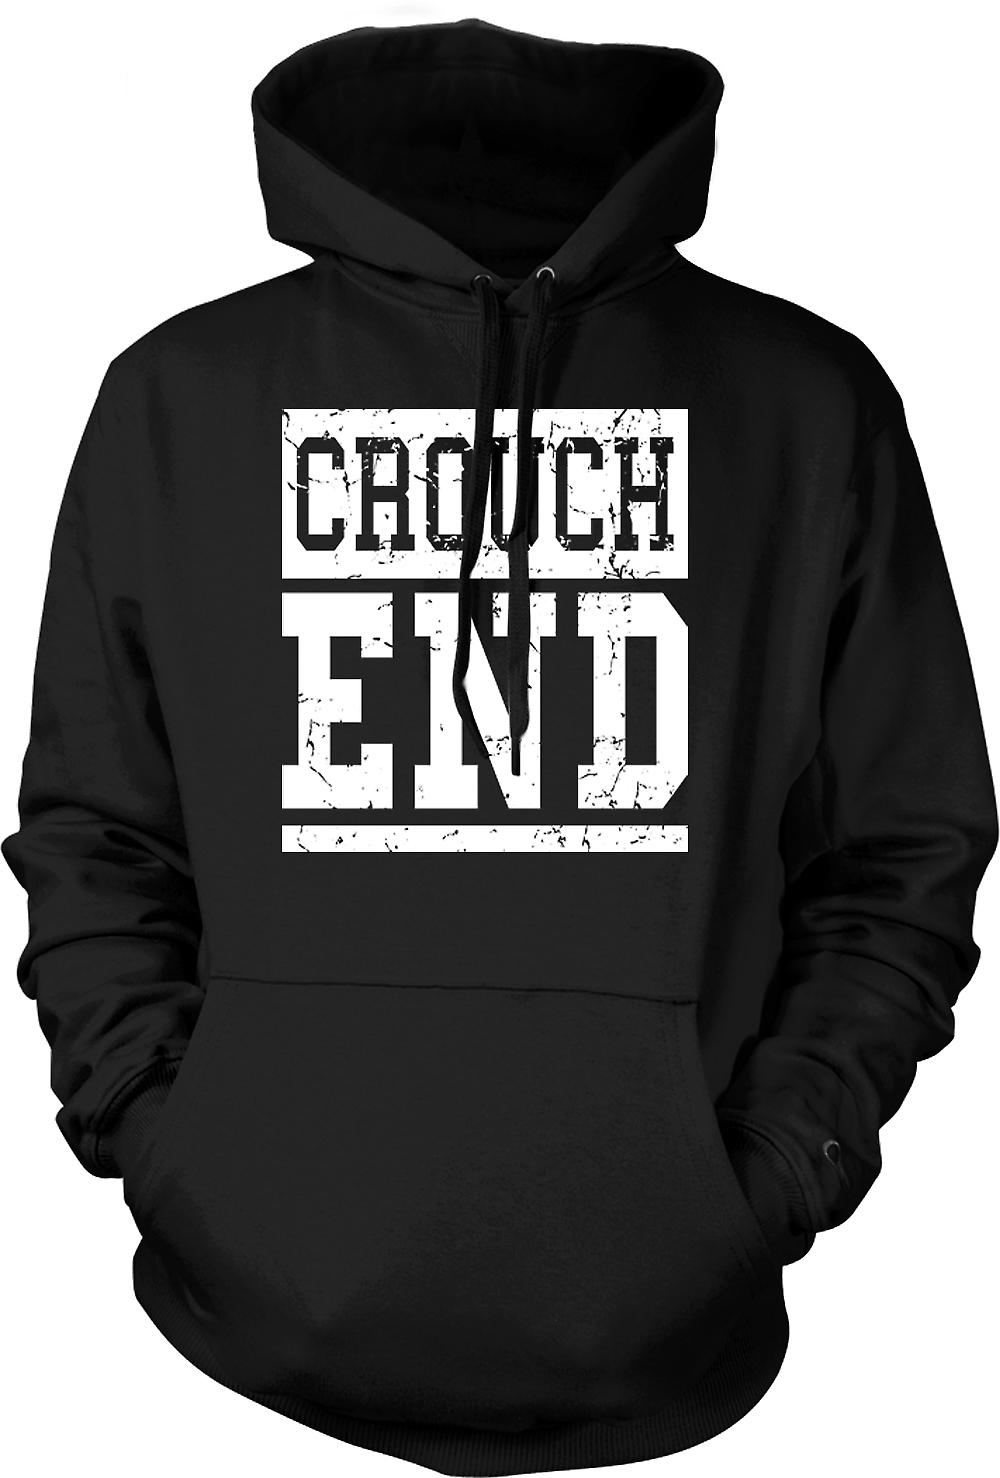 Mens Hoodie - Crouch End - Cool roliga London som bärs av Simon Pegg